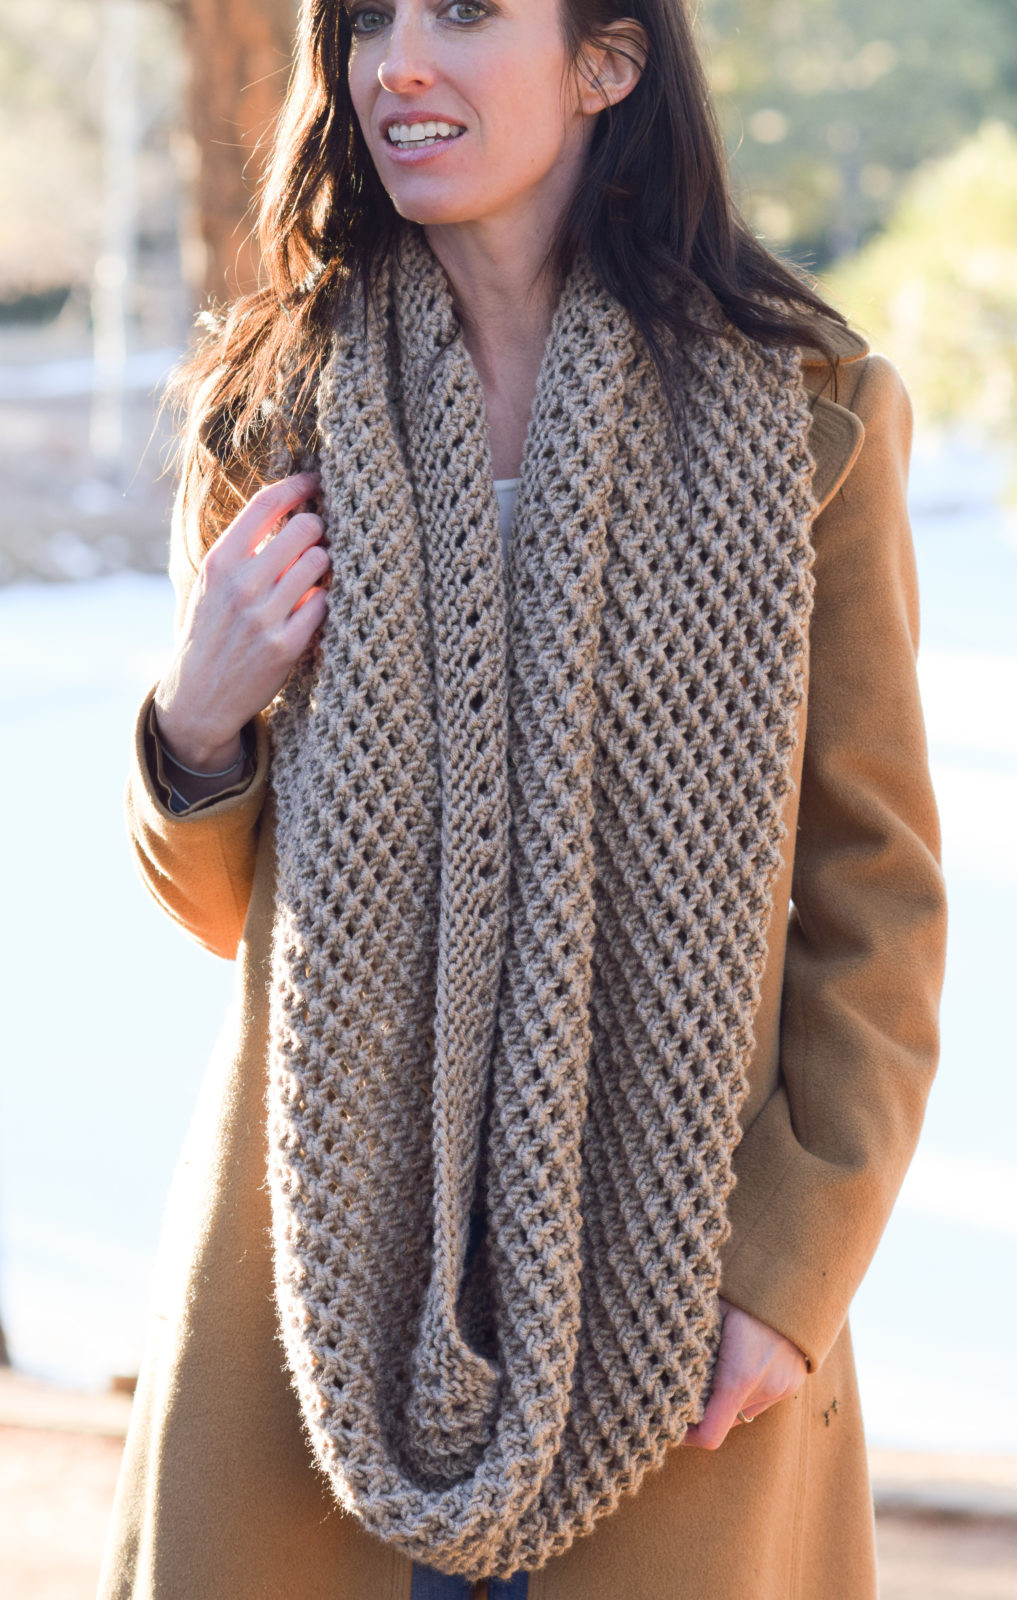 Scarf Knitting Patterns Inspirational the Traveler Knit Infinicowl Scarf Pattern – Mama In A Stitch Of Wonderful 41 Pictures Scarf Knitting Patterns